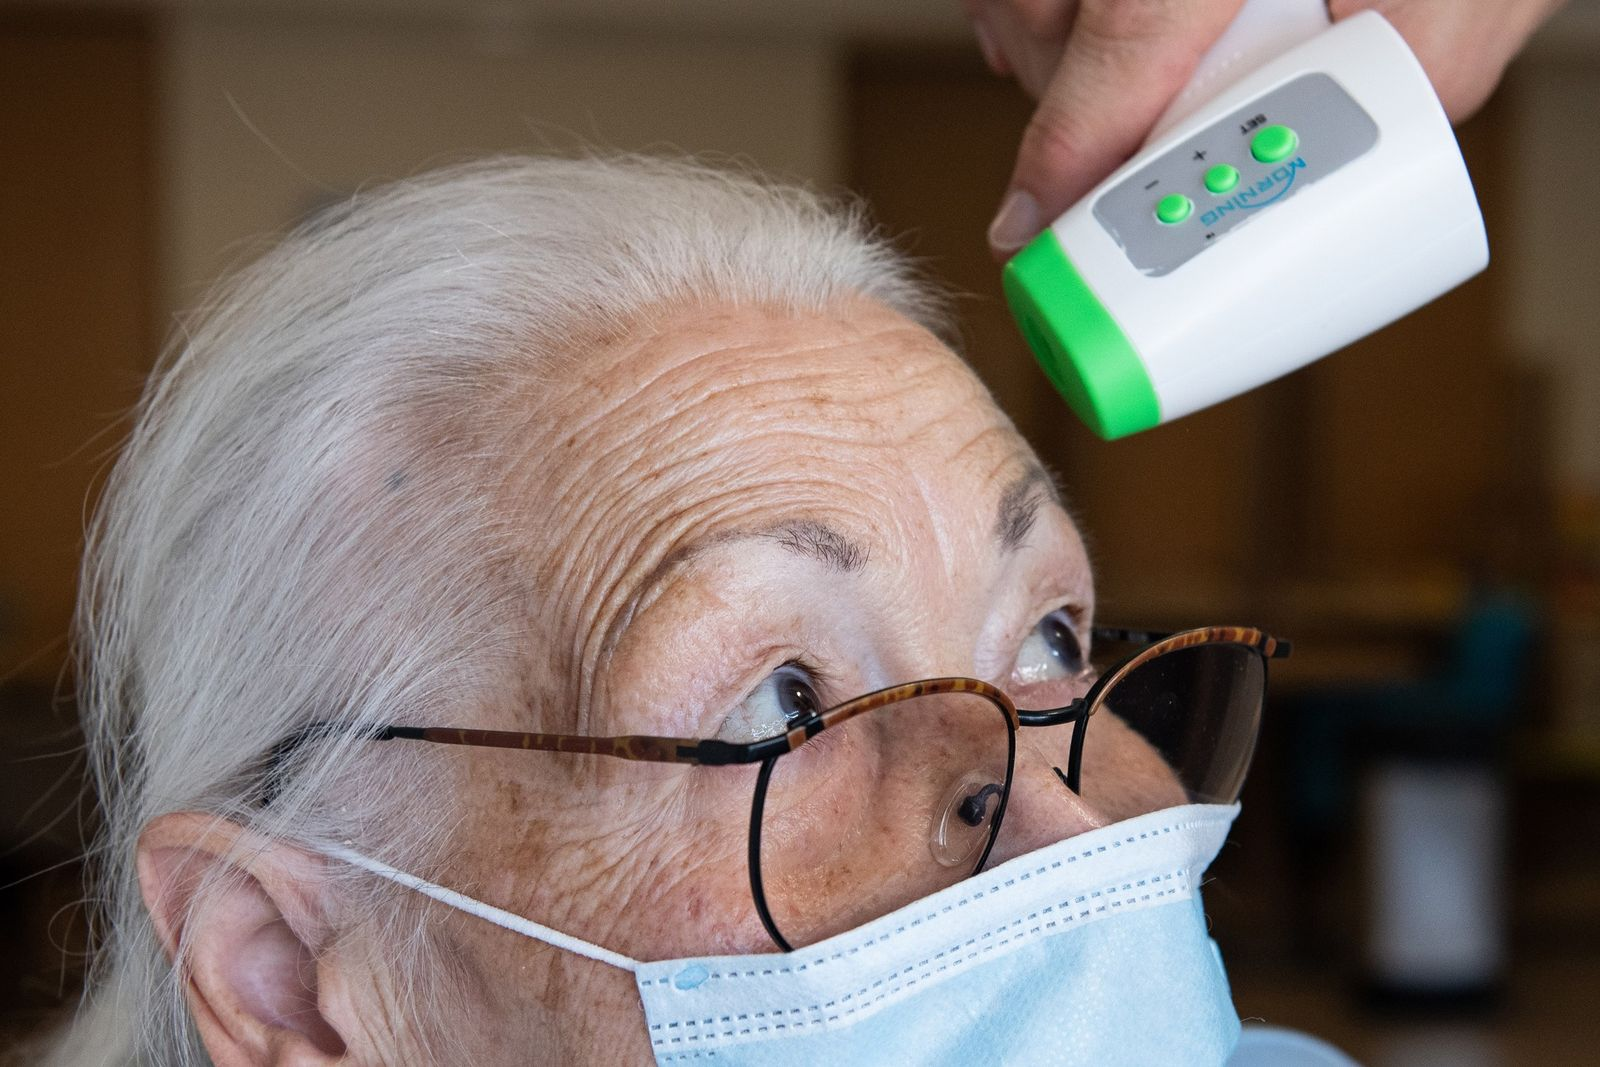 Jenny Nelle, a resident of an AWO senior center in Kassel, Germany, has her body temperature ...